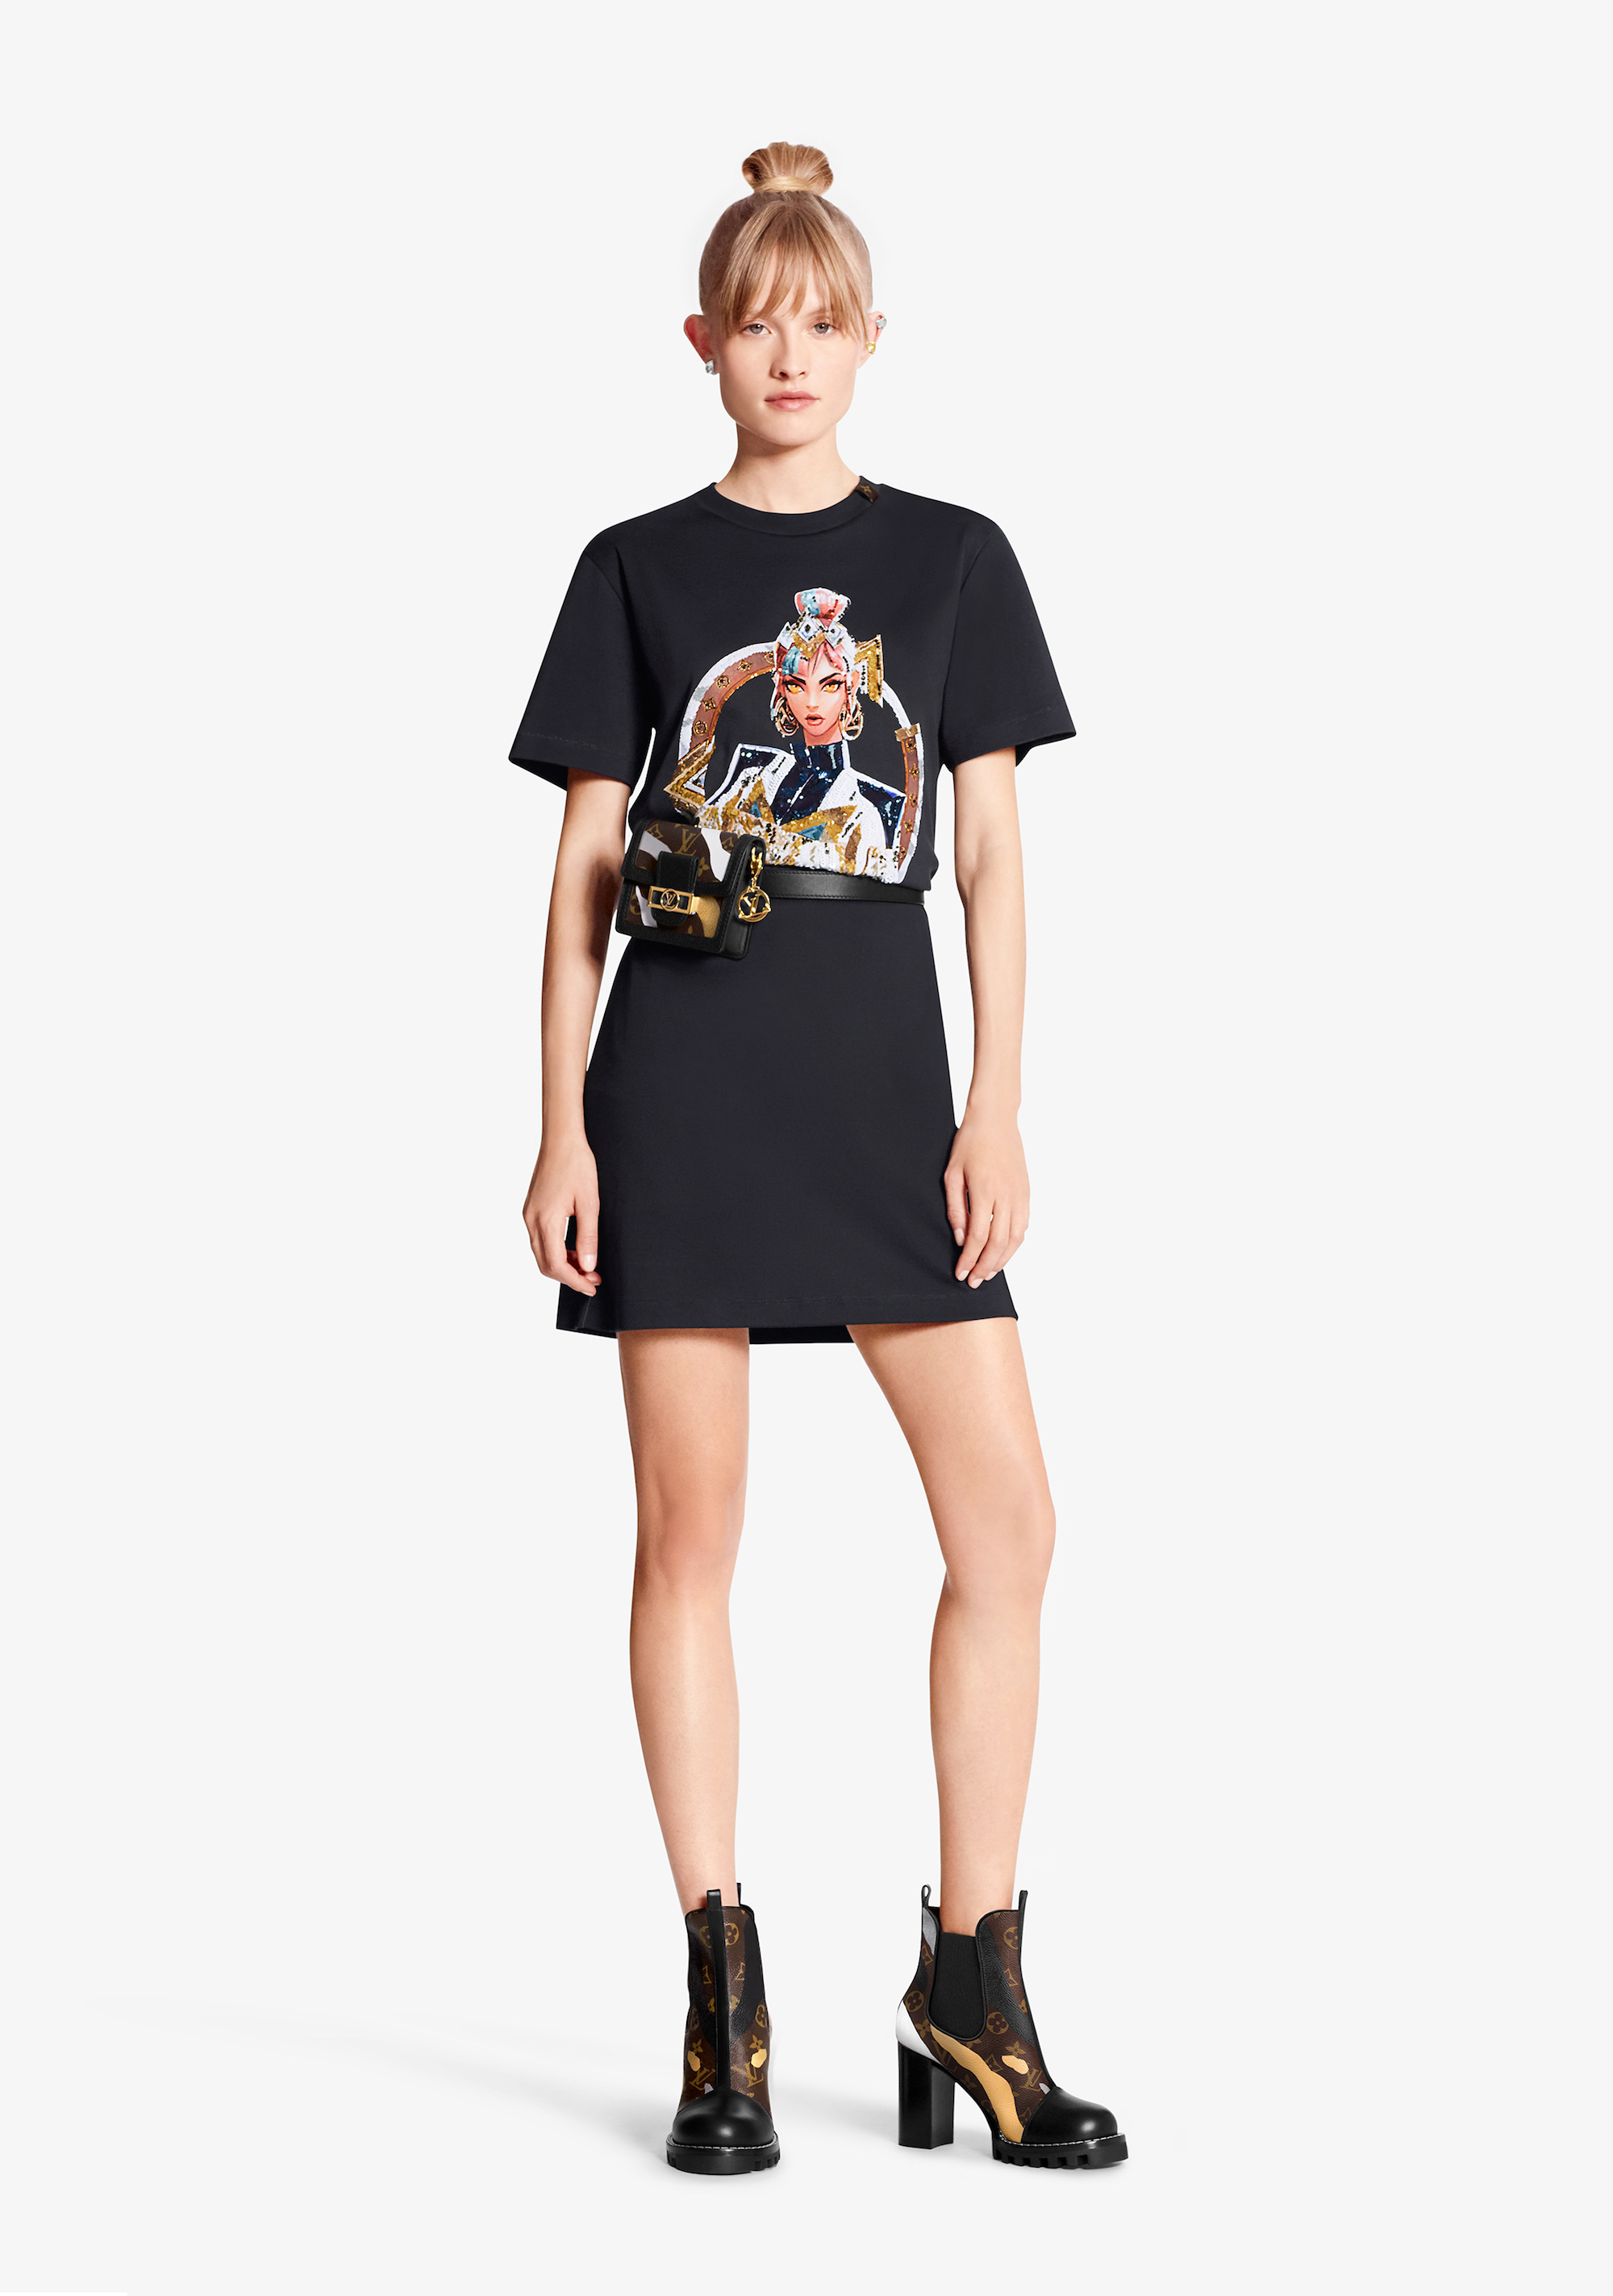 Louis Vuitton x League of Legends capsule collection t-shirt